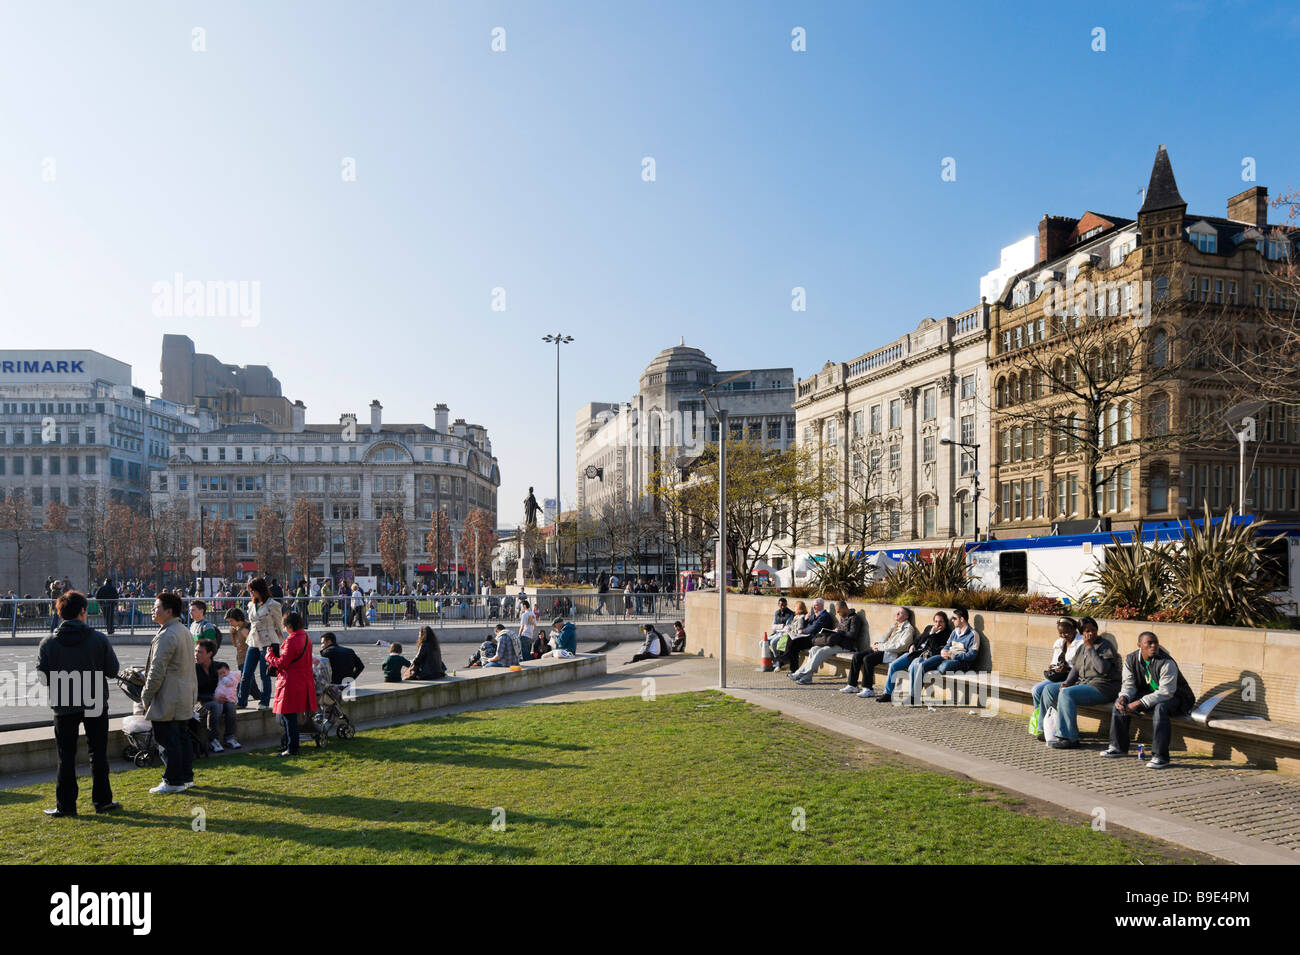 Piccadilly Gardens in the city centre, Manchester, England - Stock Image